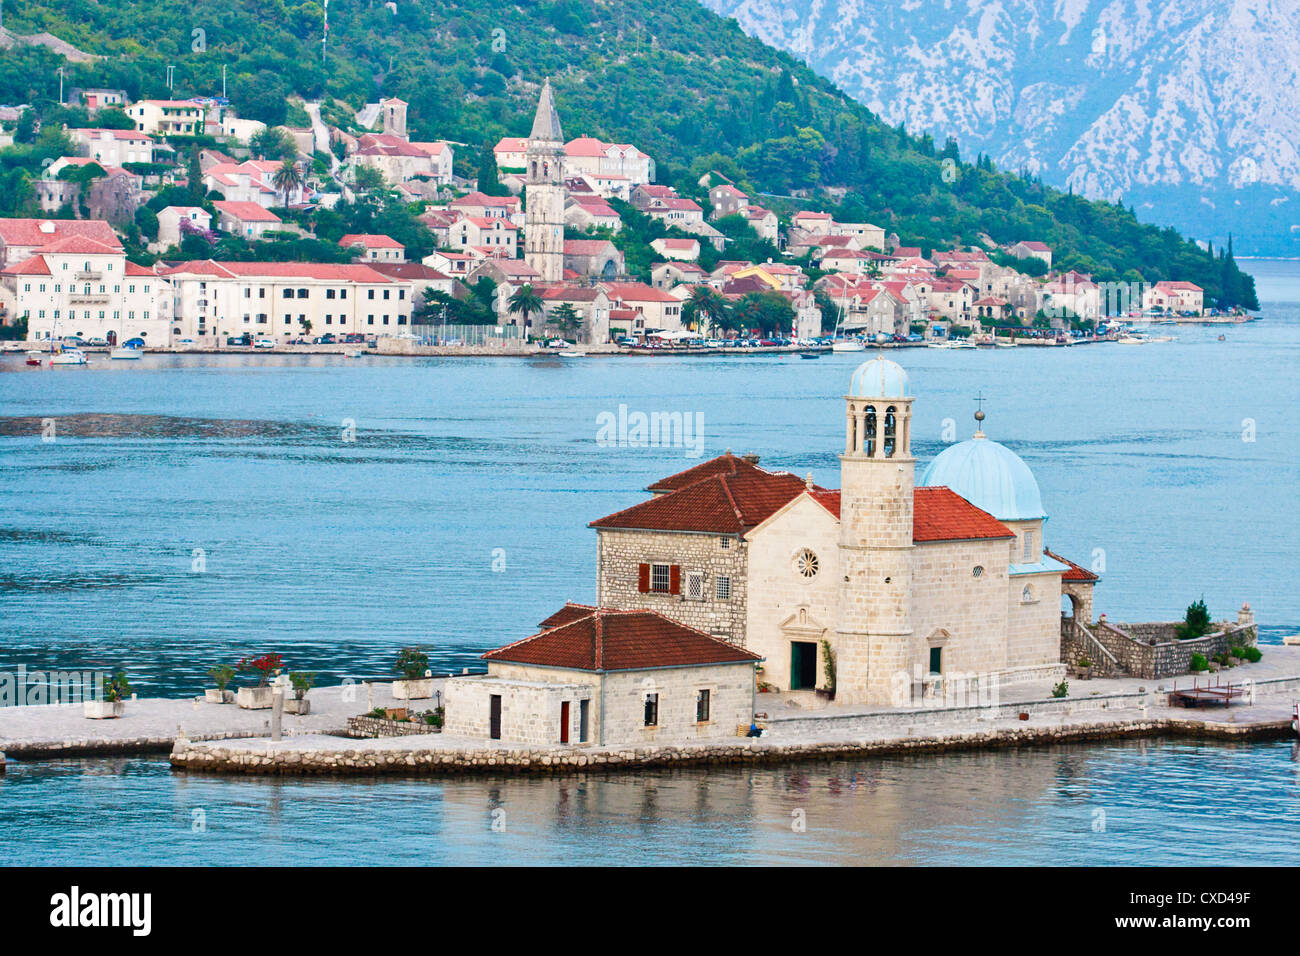 Our Lady of the Rocks and Perast, Montenegro - Stock Image